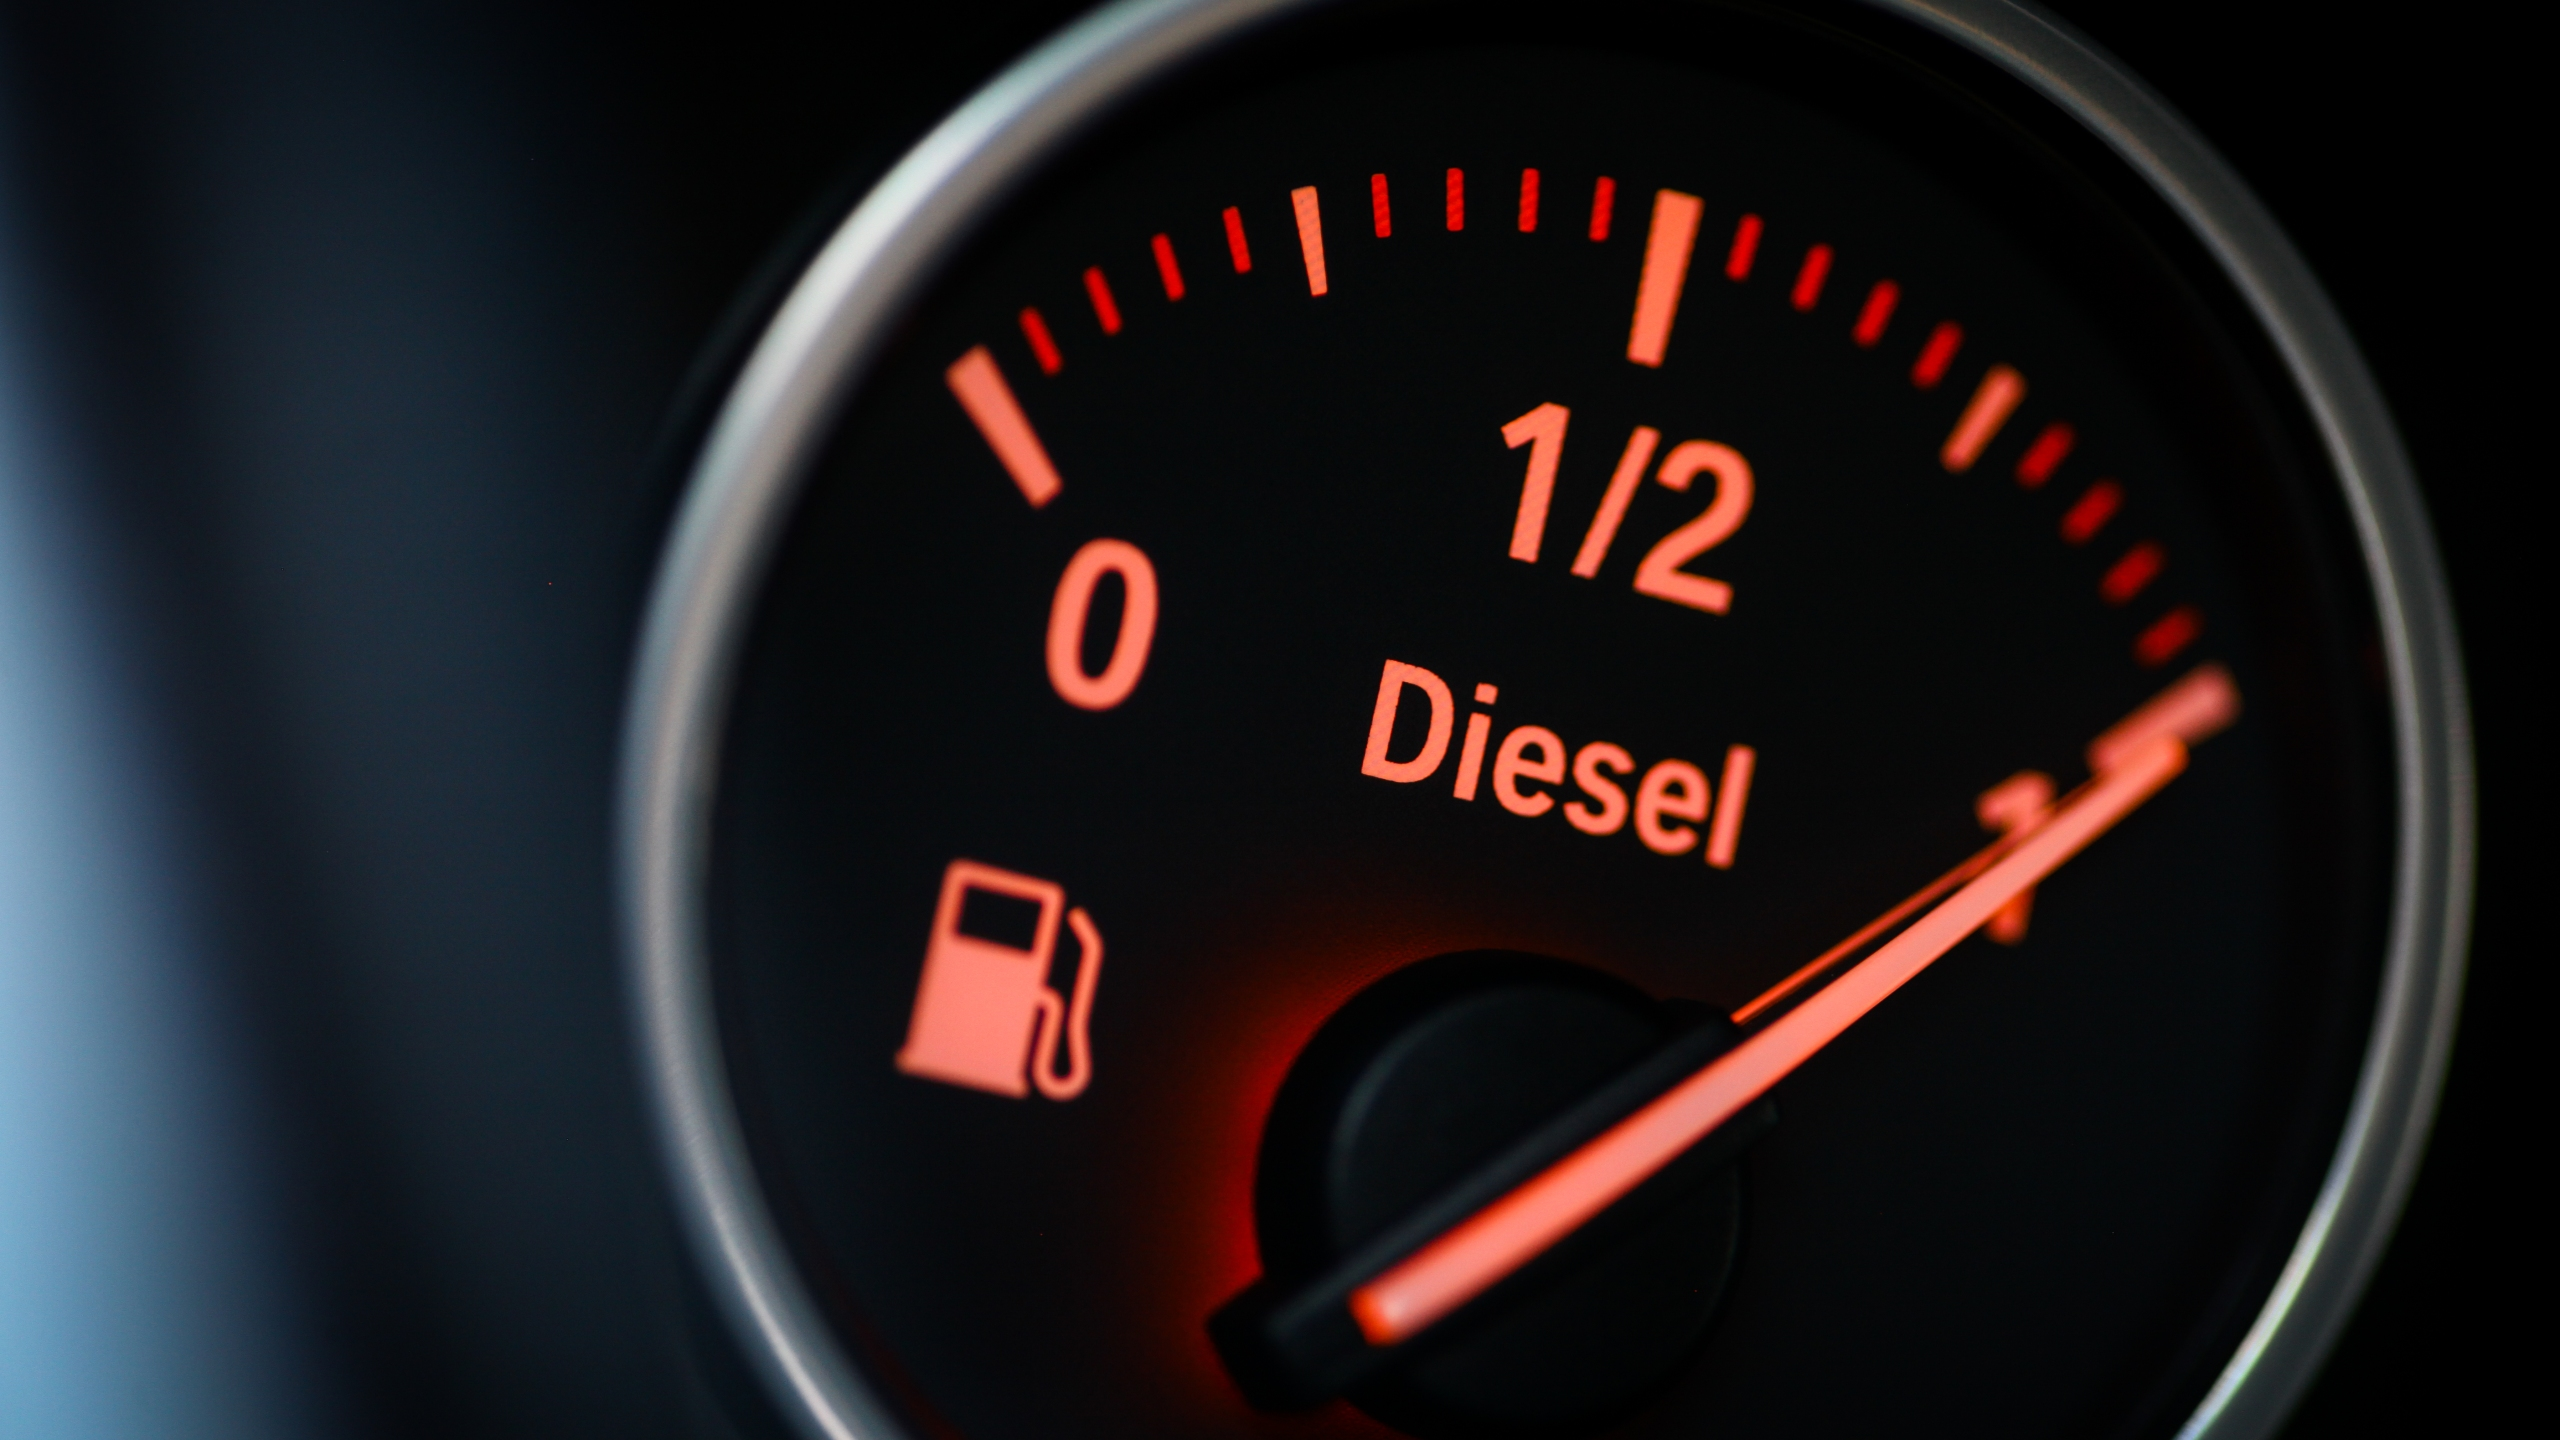 Germany's top court says cities can ban diesel cars   CW39 Houston